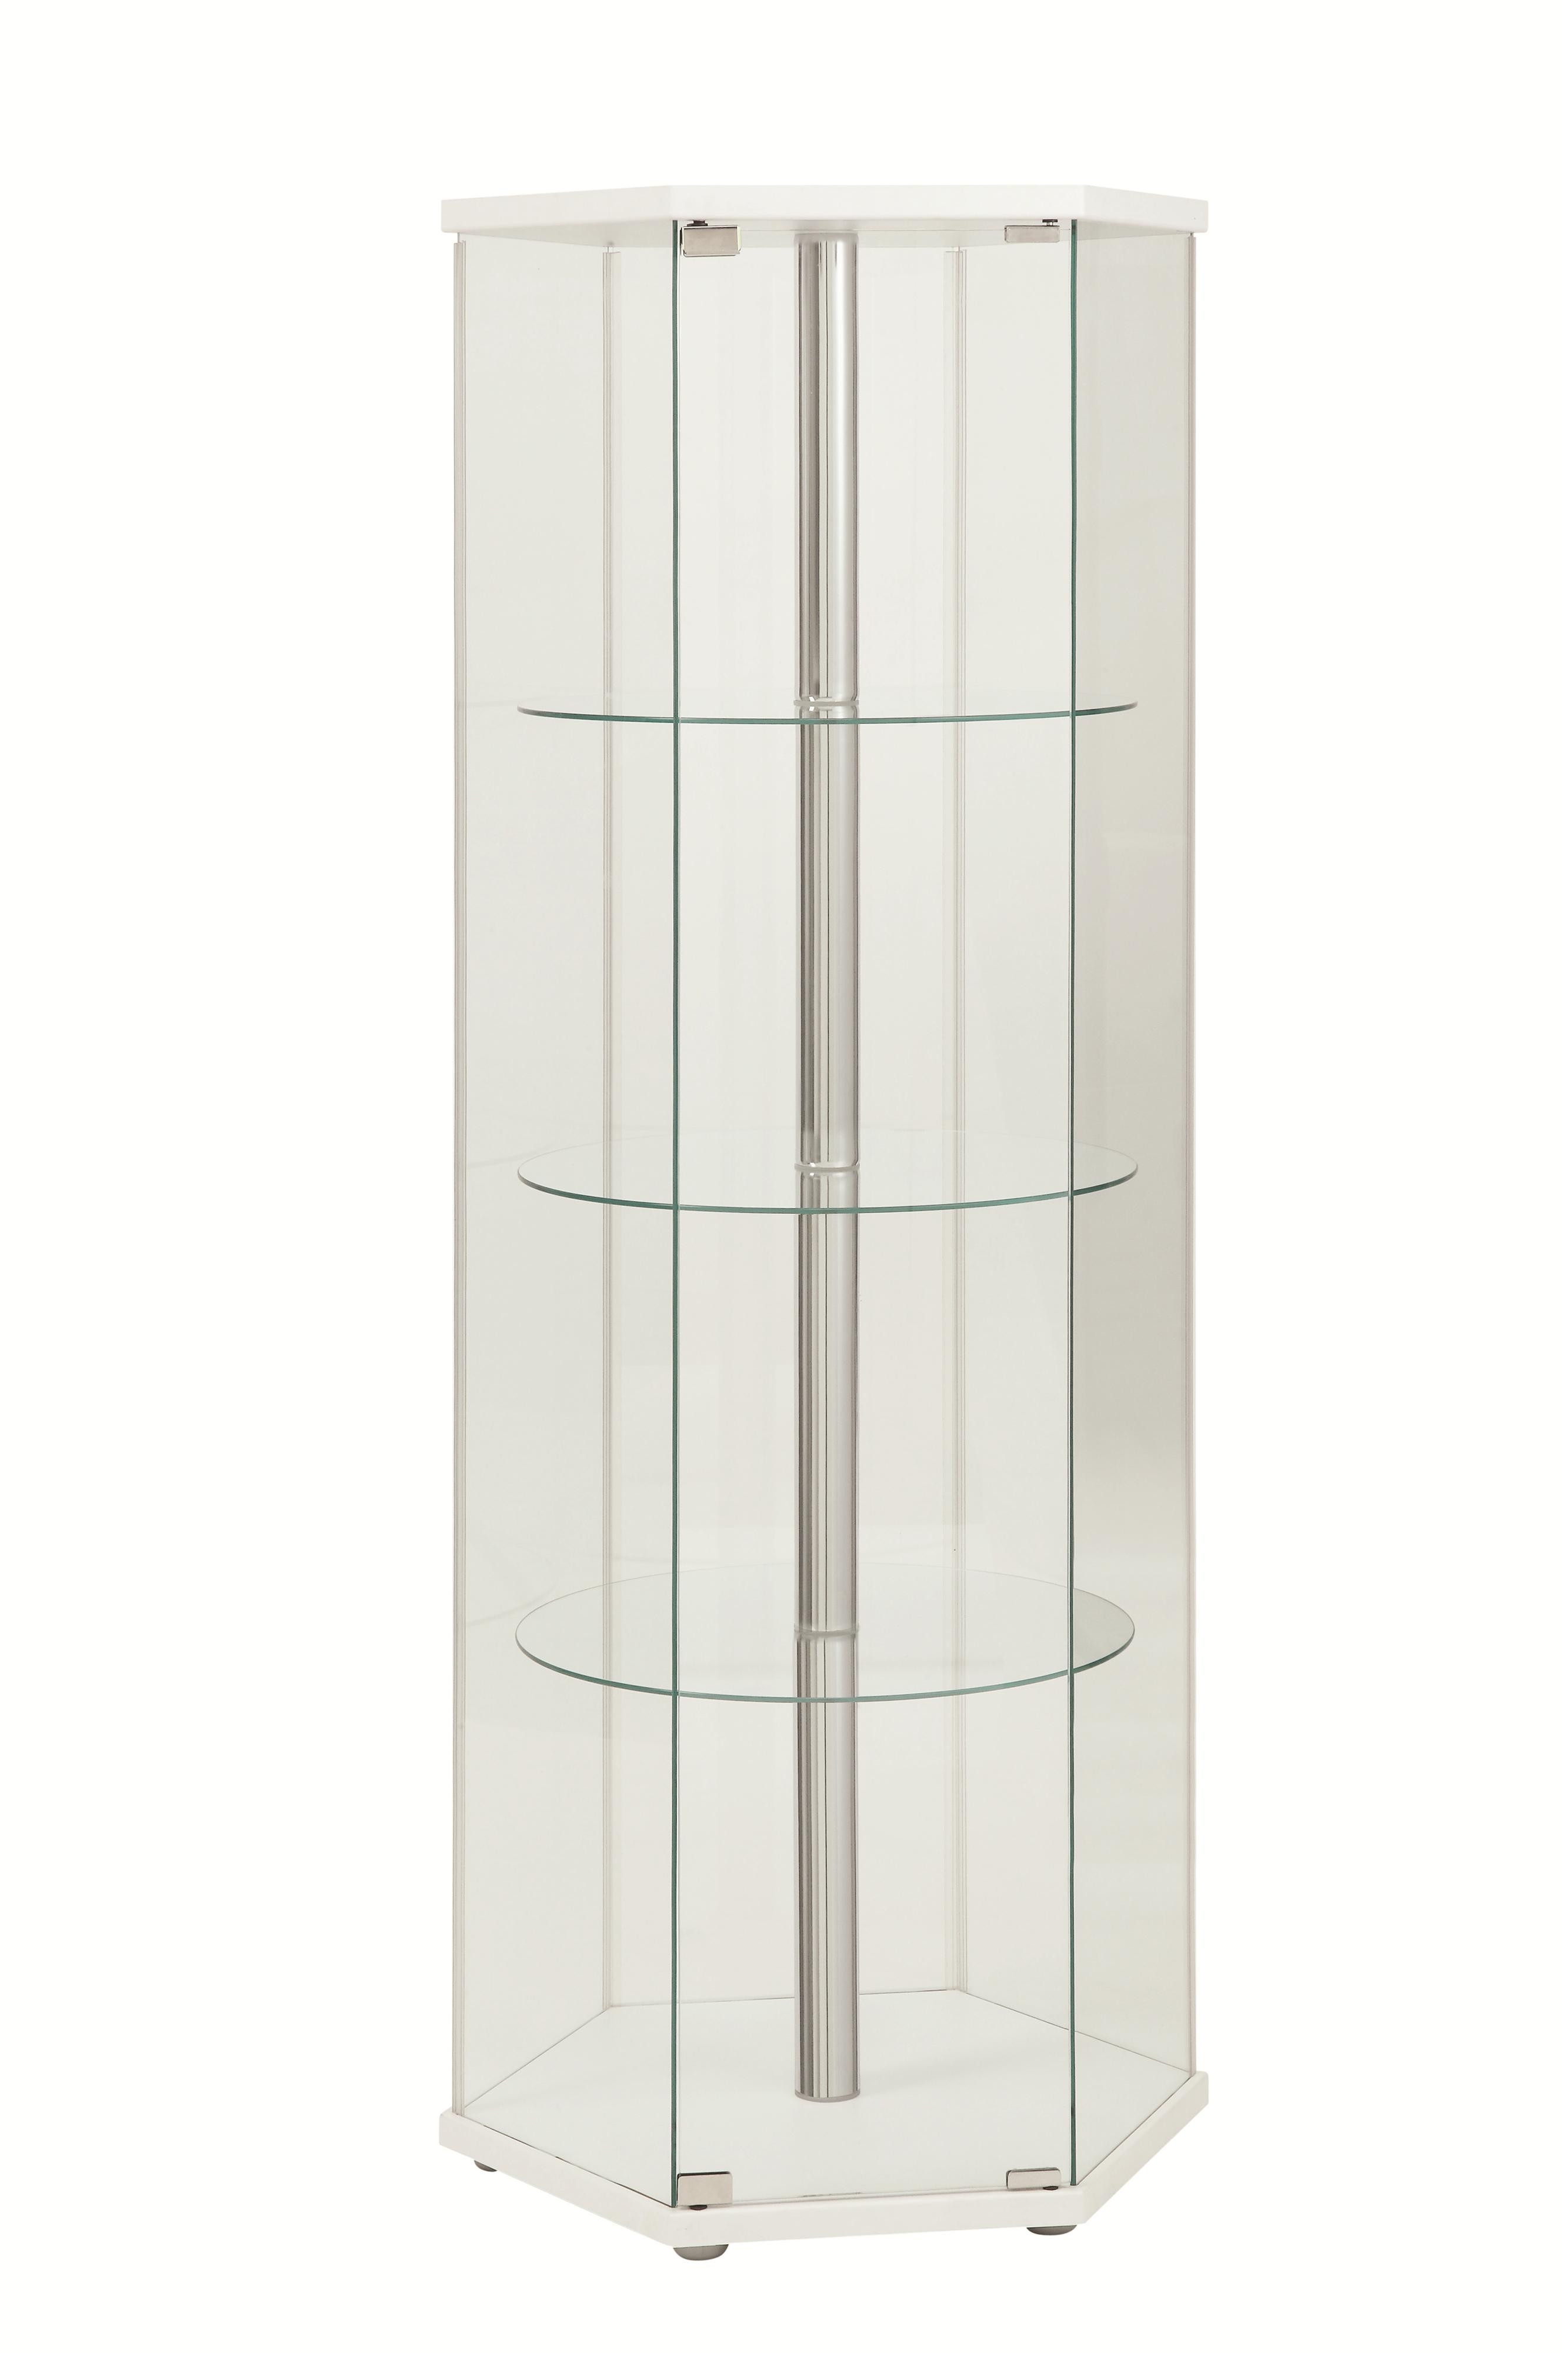 Accent Cabinets Curio Cabinet by Michael Alan CSR Select at Michael Alan Furniture & Design